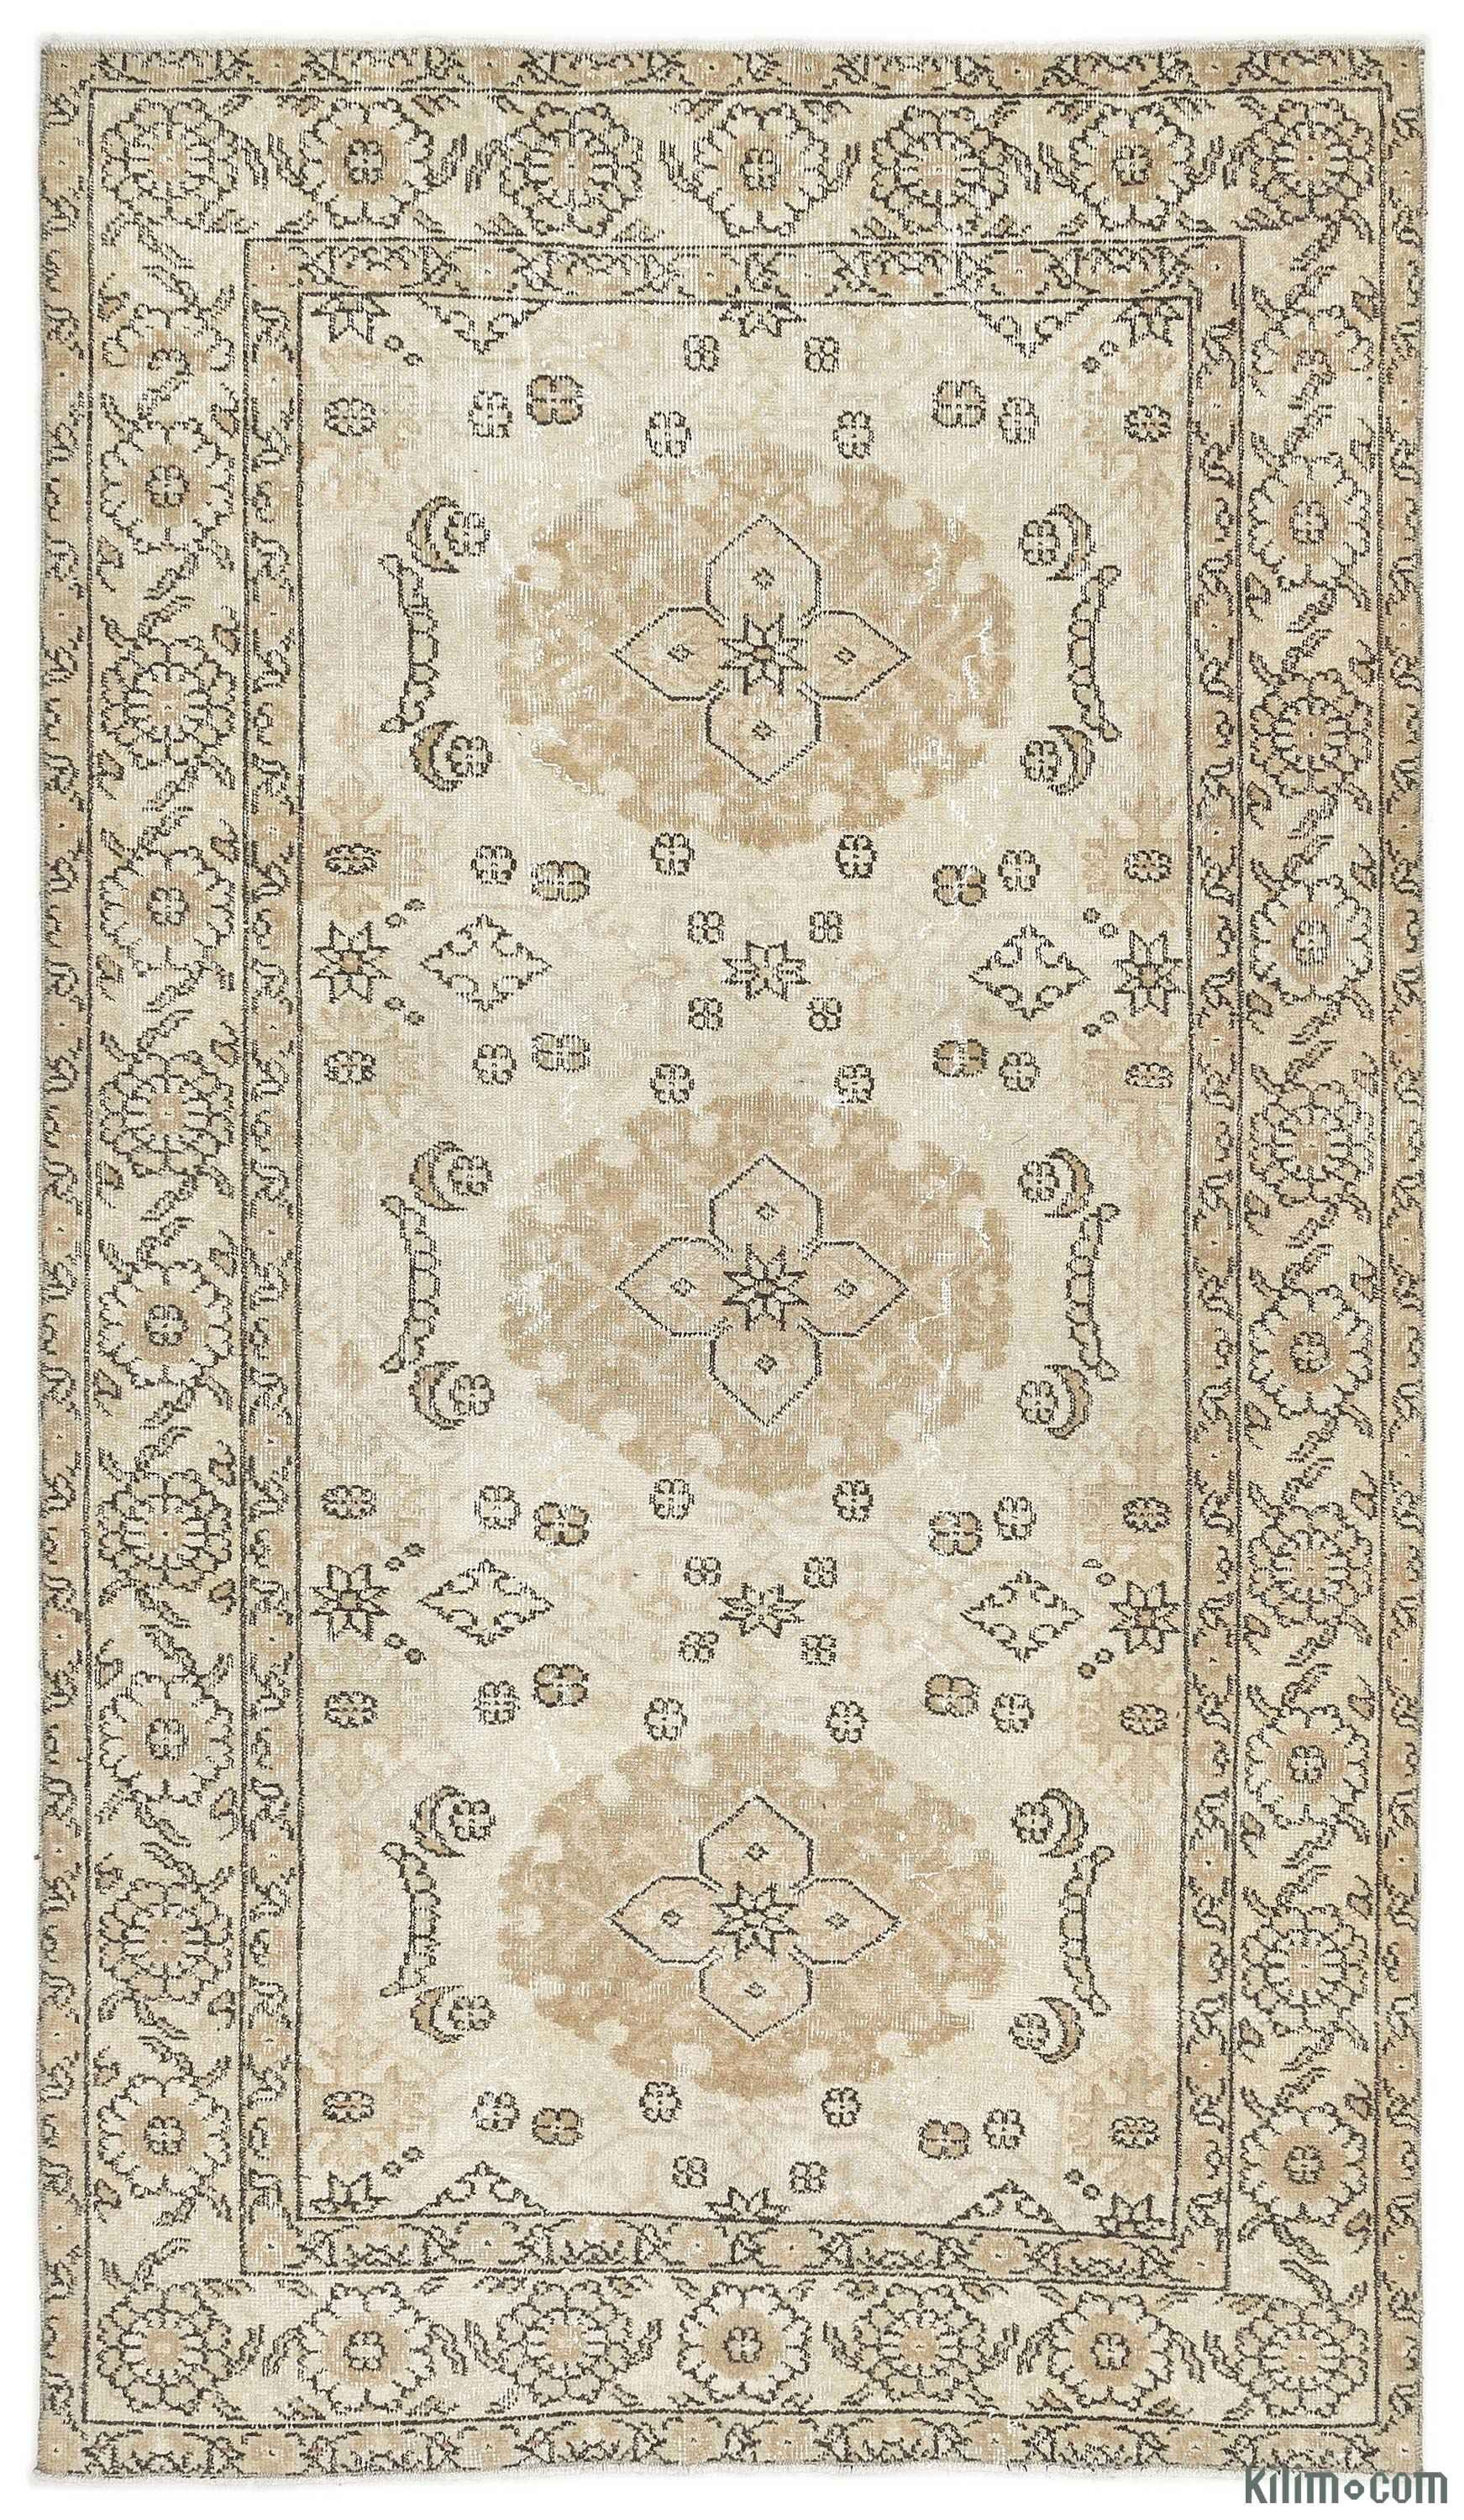 For A Contemporary Look With A Vintage Appeal We Source Rugs Hand Woven In The 60 S And 70 S In Excellent Condition A Vintage Area Rugs Vintage Rugs Area Rugs